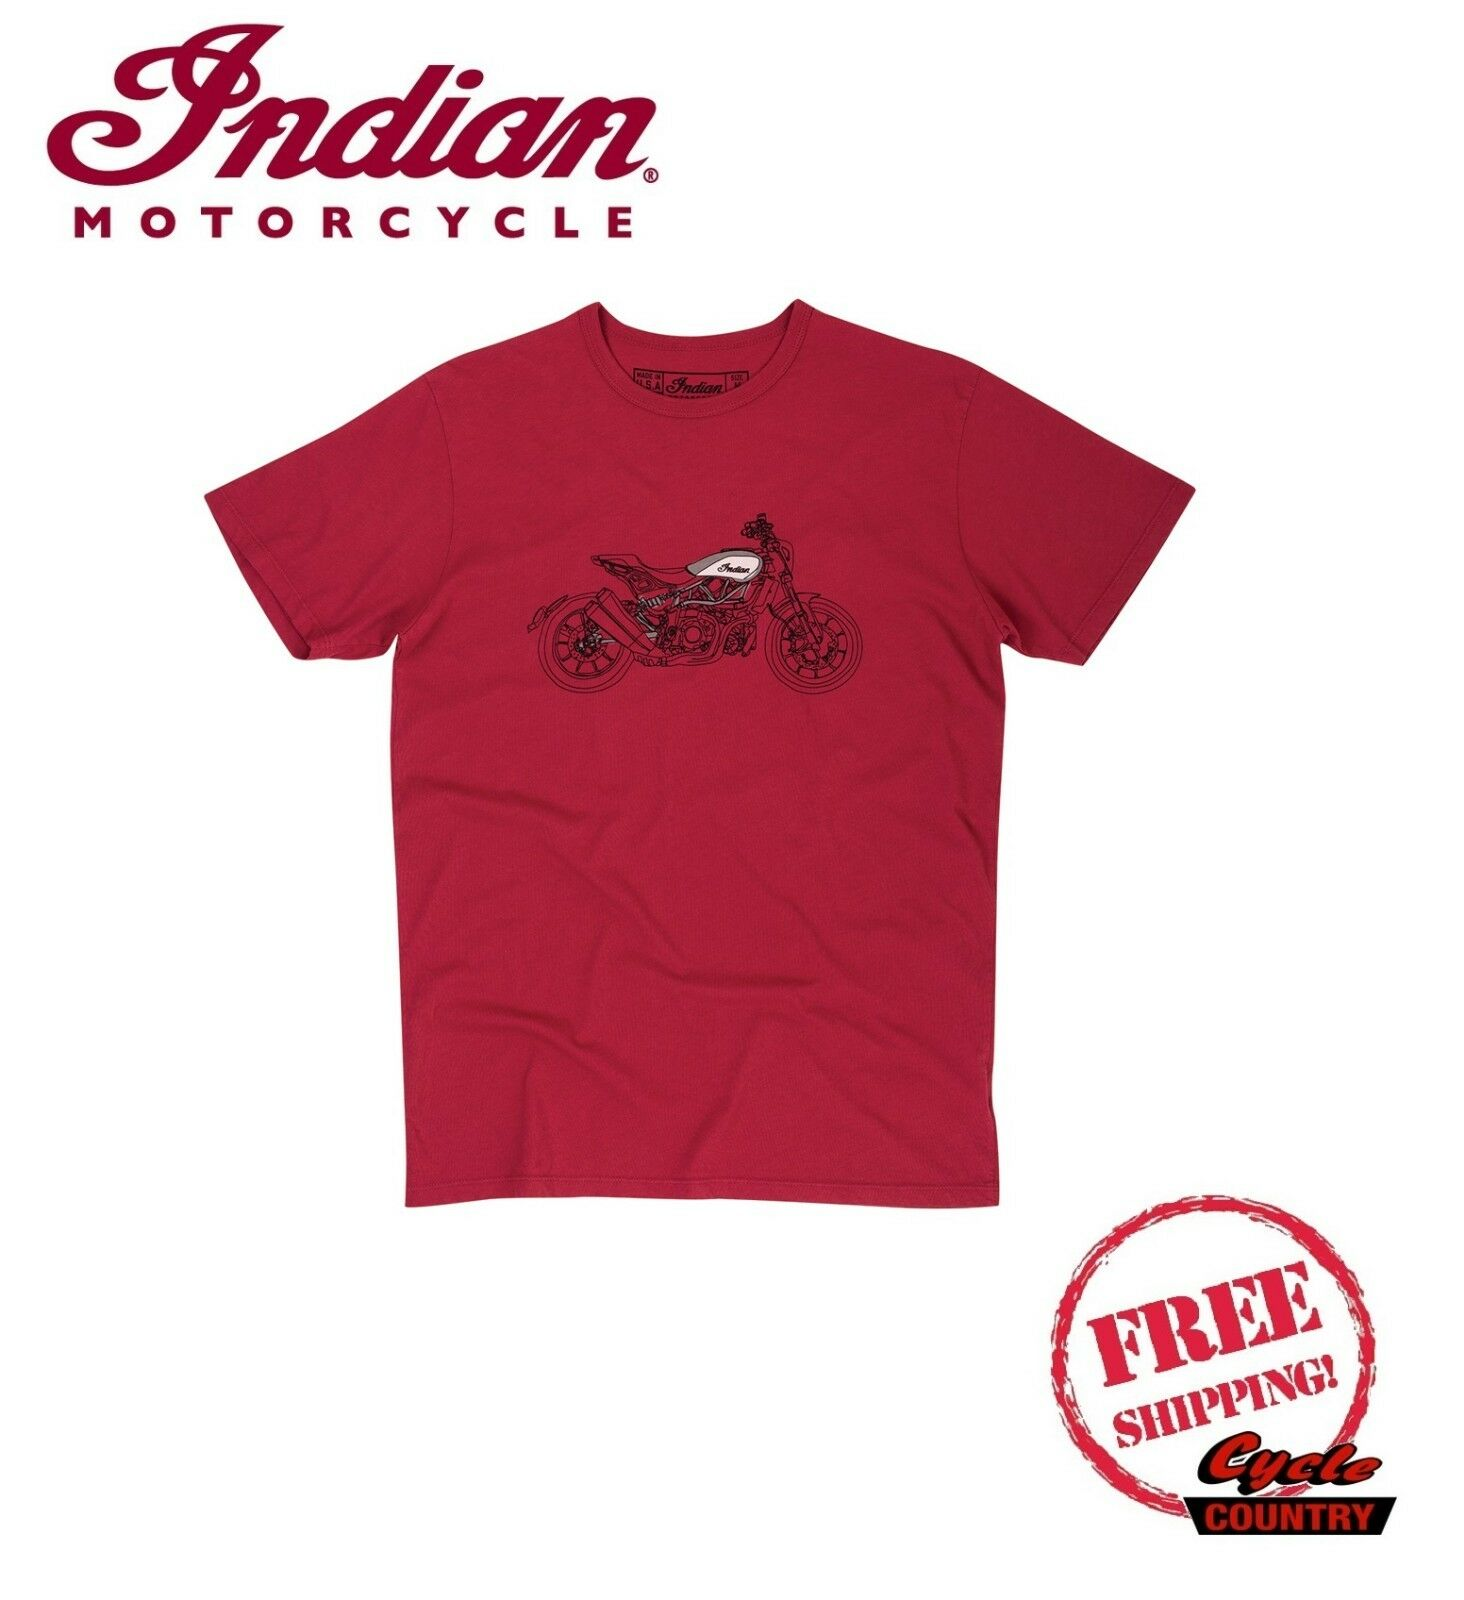 GENUINE INDIAN MOTORCYCLE BRAND COTTON T-SHIRT TEE FTR 1200 HAND DRAWN BIKE RED